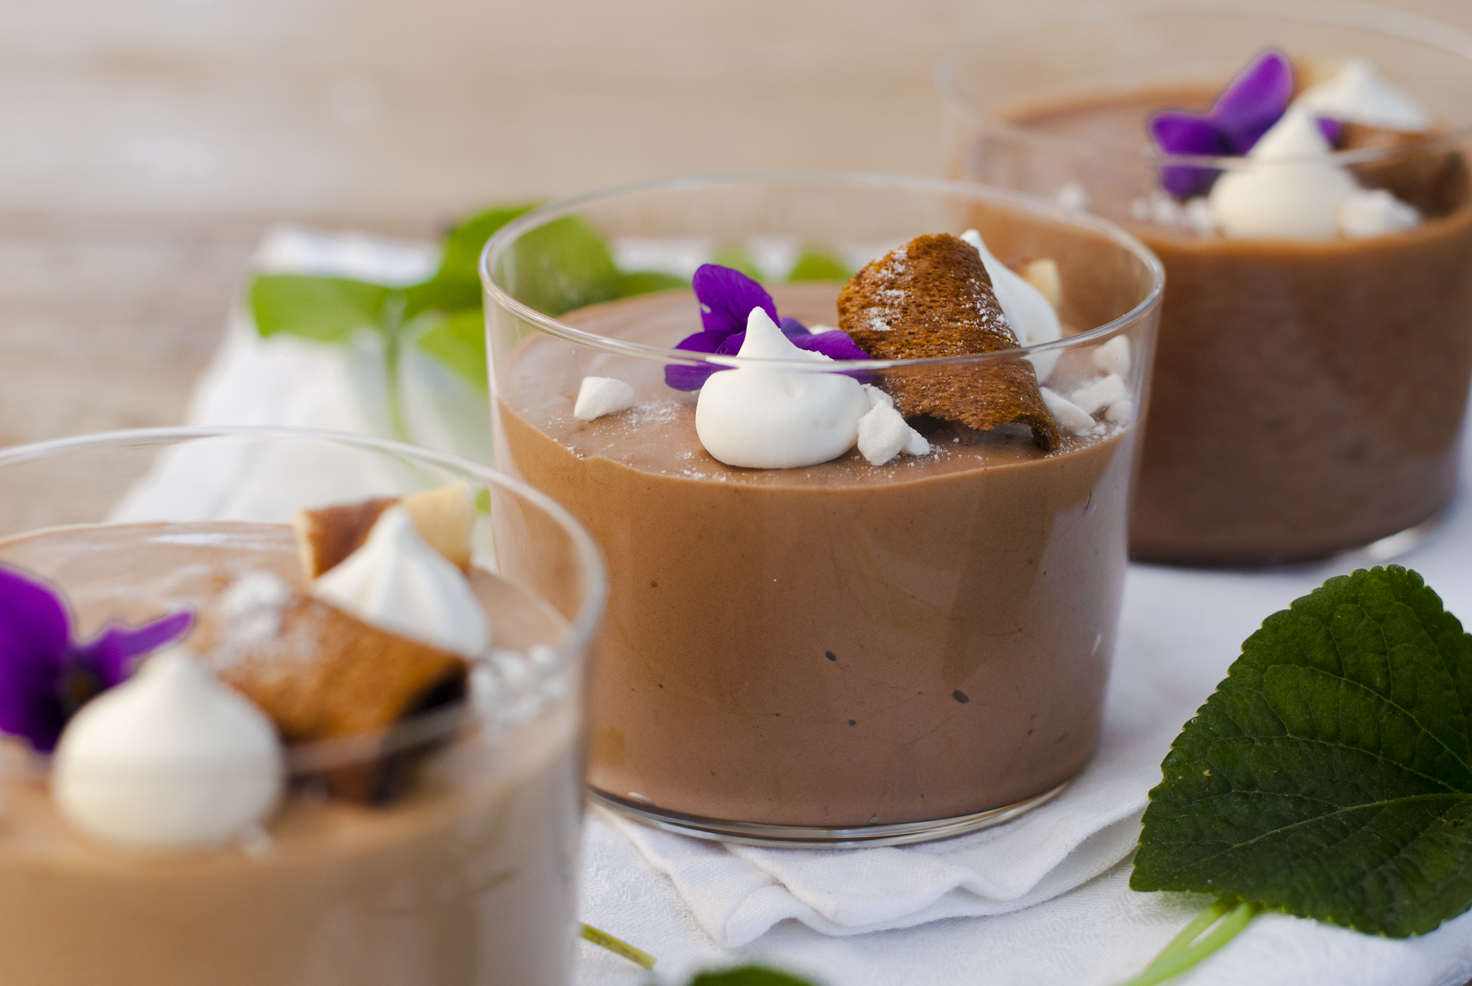 Mousse Al Cioccolato Al Latte In 3 Consistenze